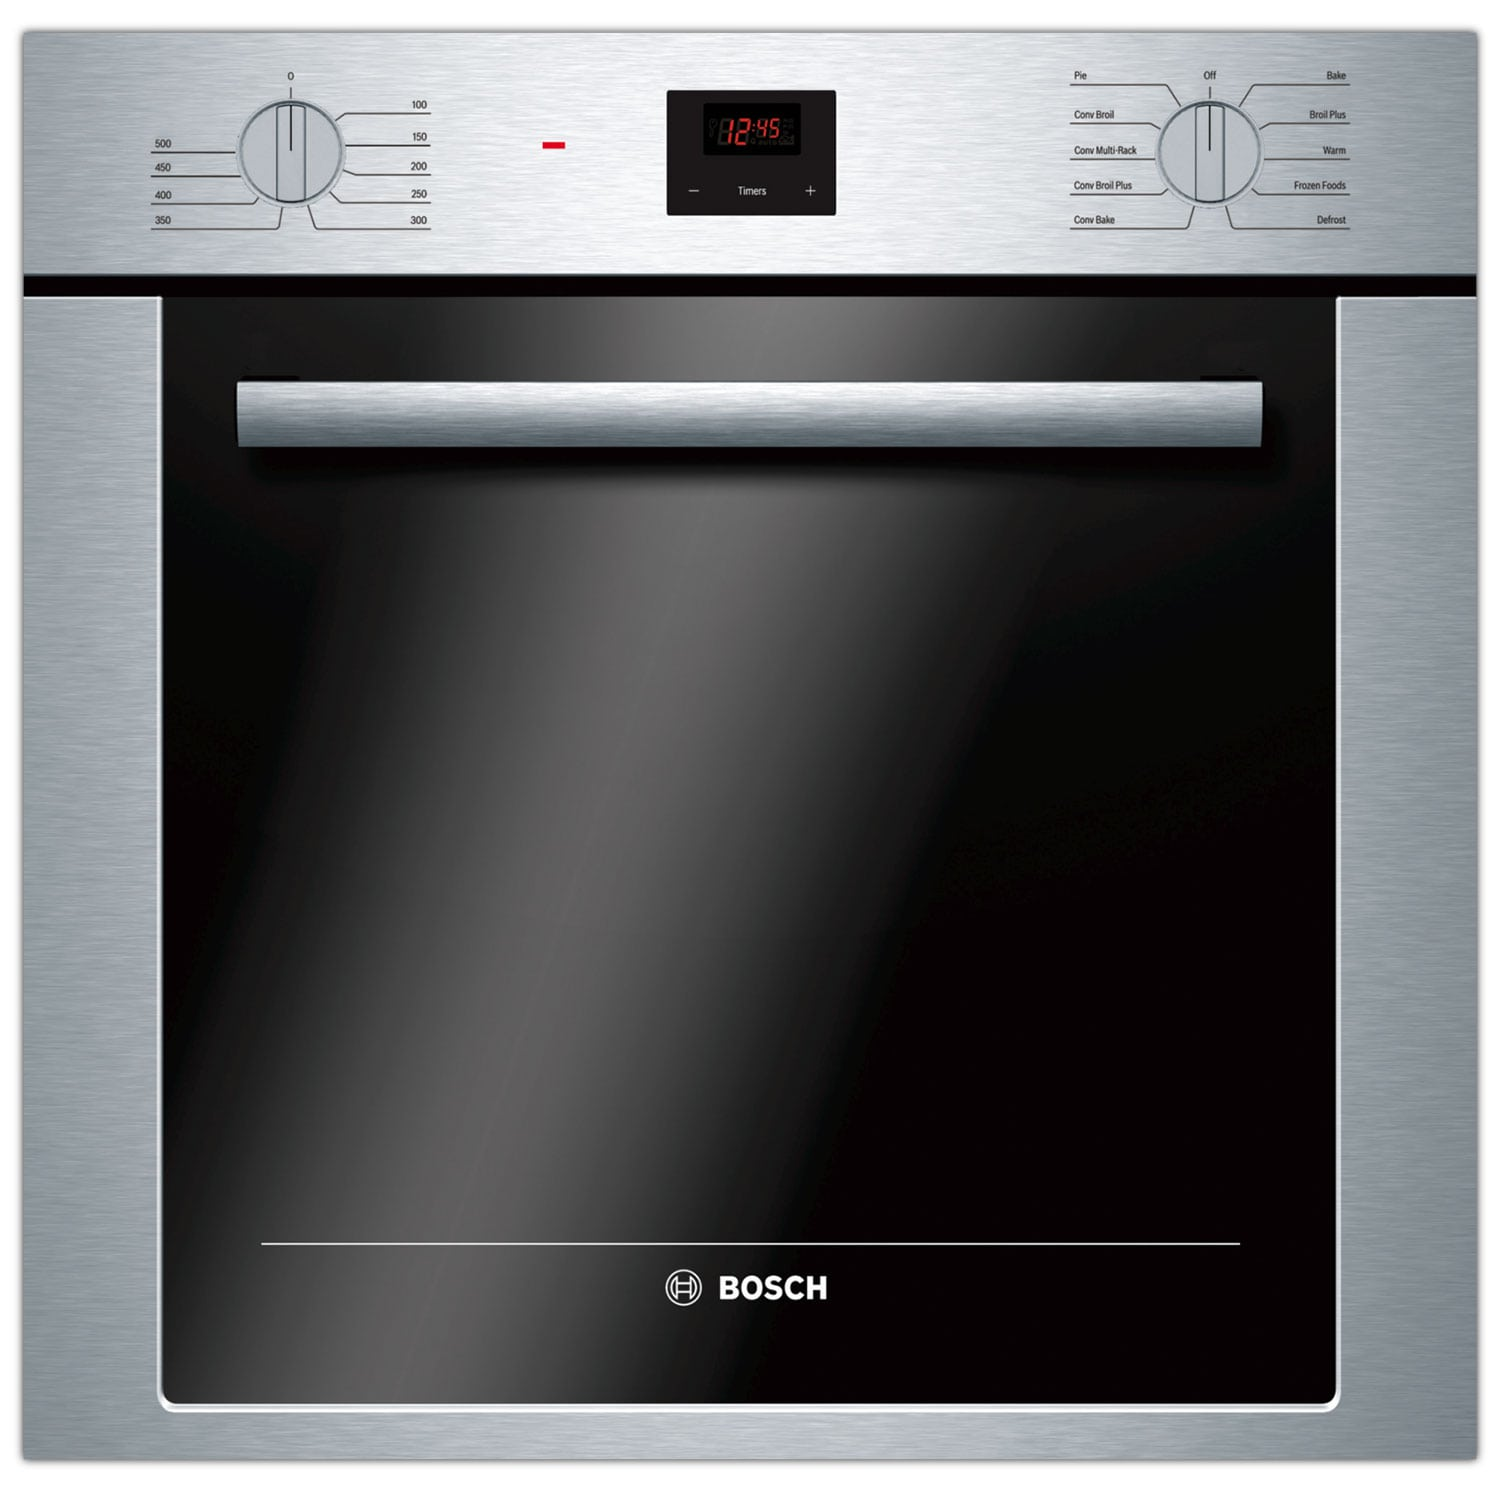 Bosch Stainless Steel Wall Oven (2.8 Cu. Ft.) - HBE5451UC